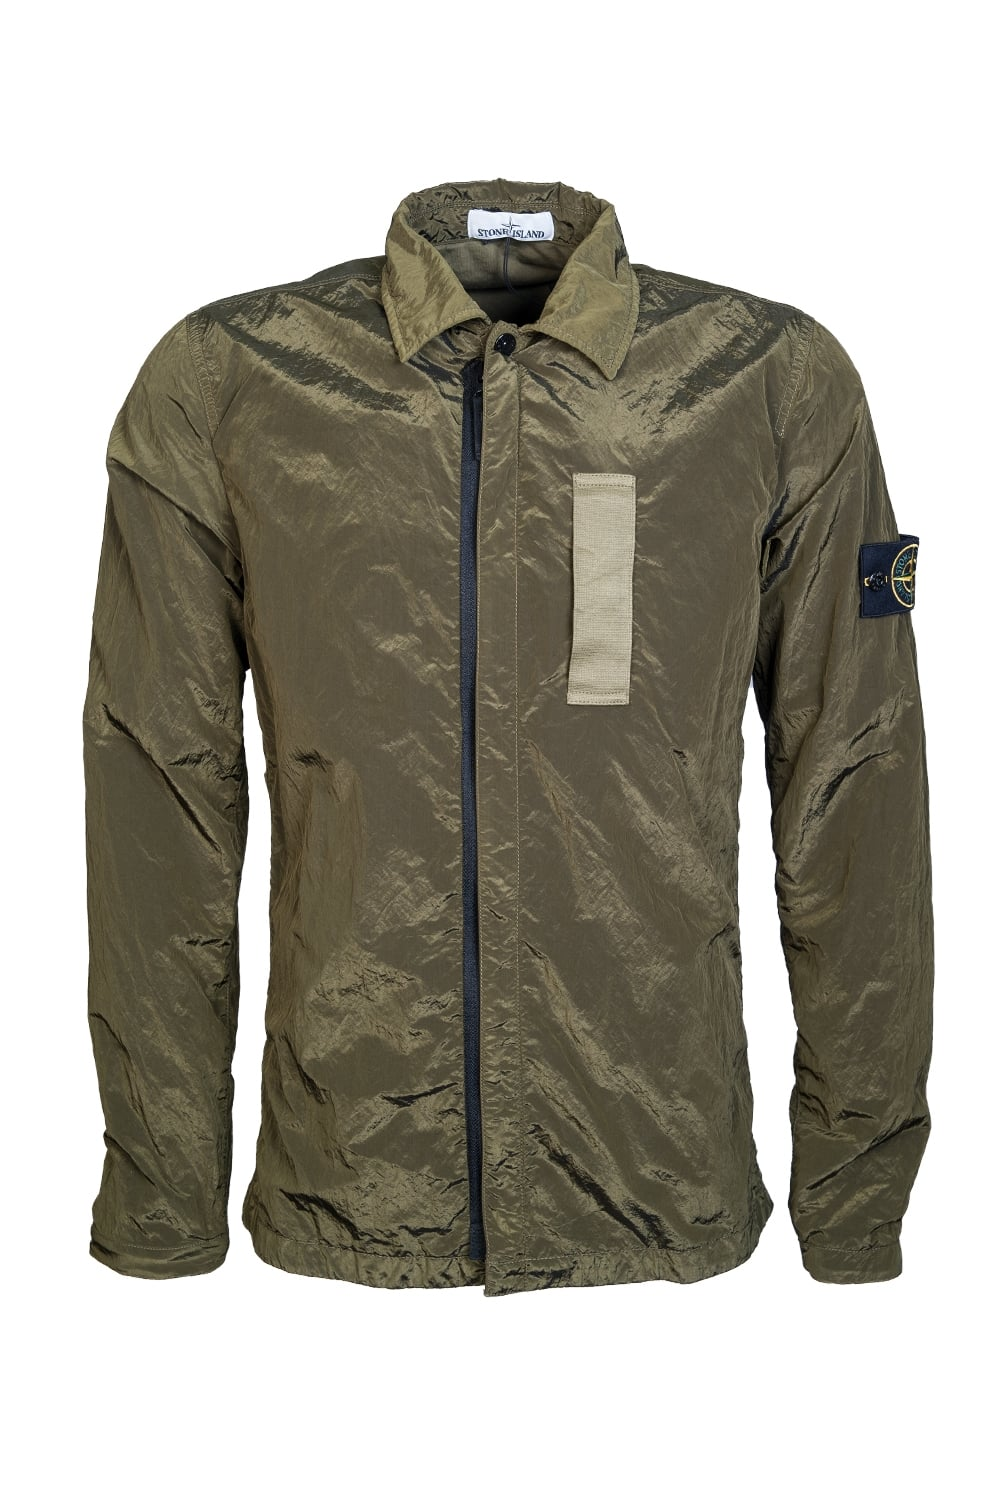 stone island jacket 671511612 clothing from sage clothing uk. Black Bedroom Furniture Sets. Home Design Ideas